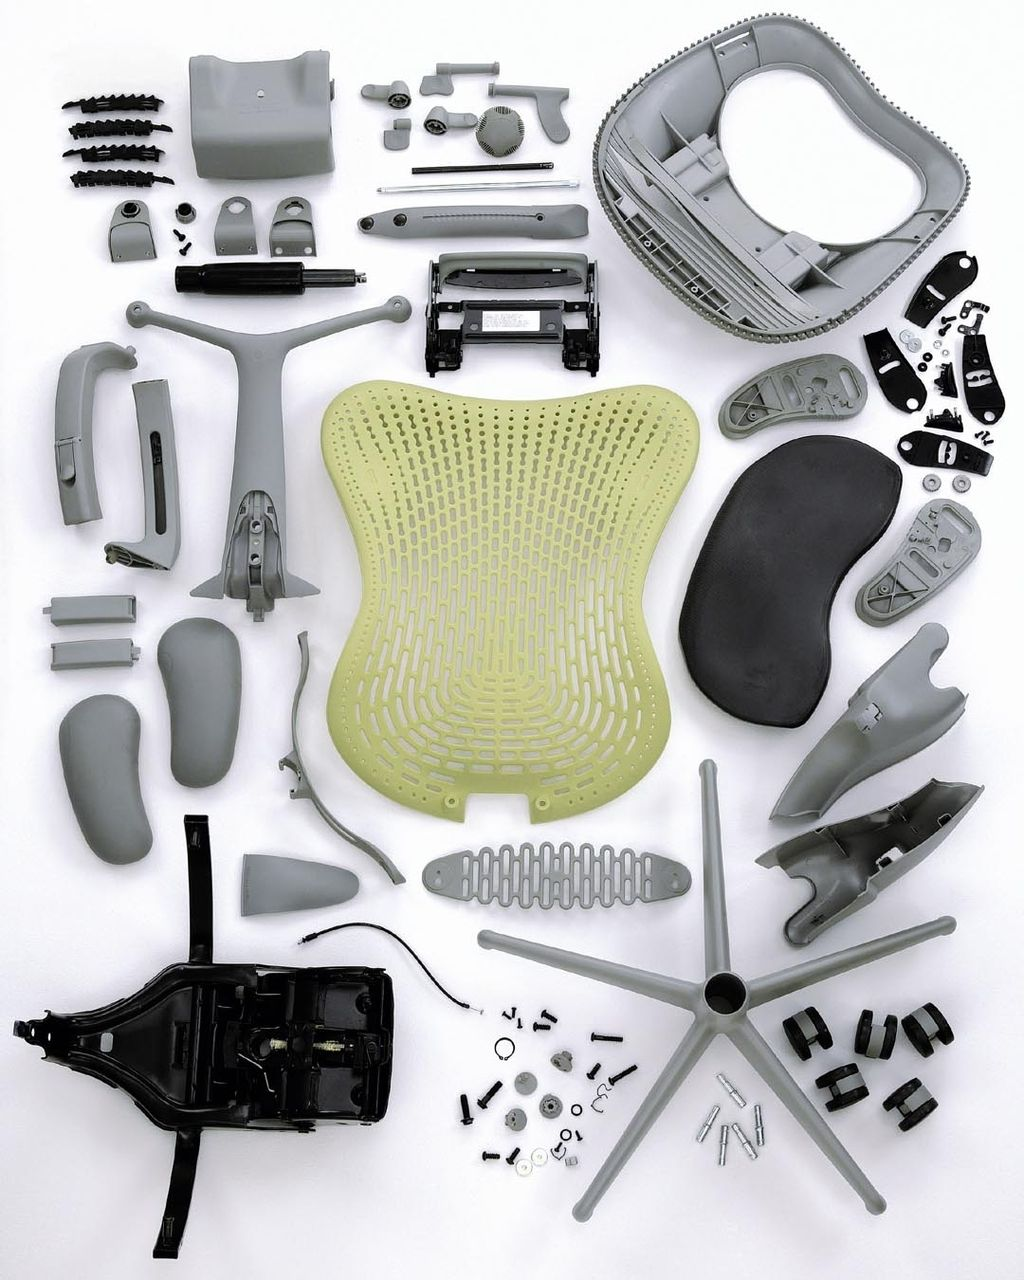 herman miller mirra chair for the studio looks like you get a fair few parts